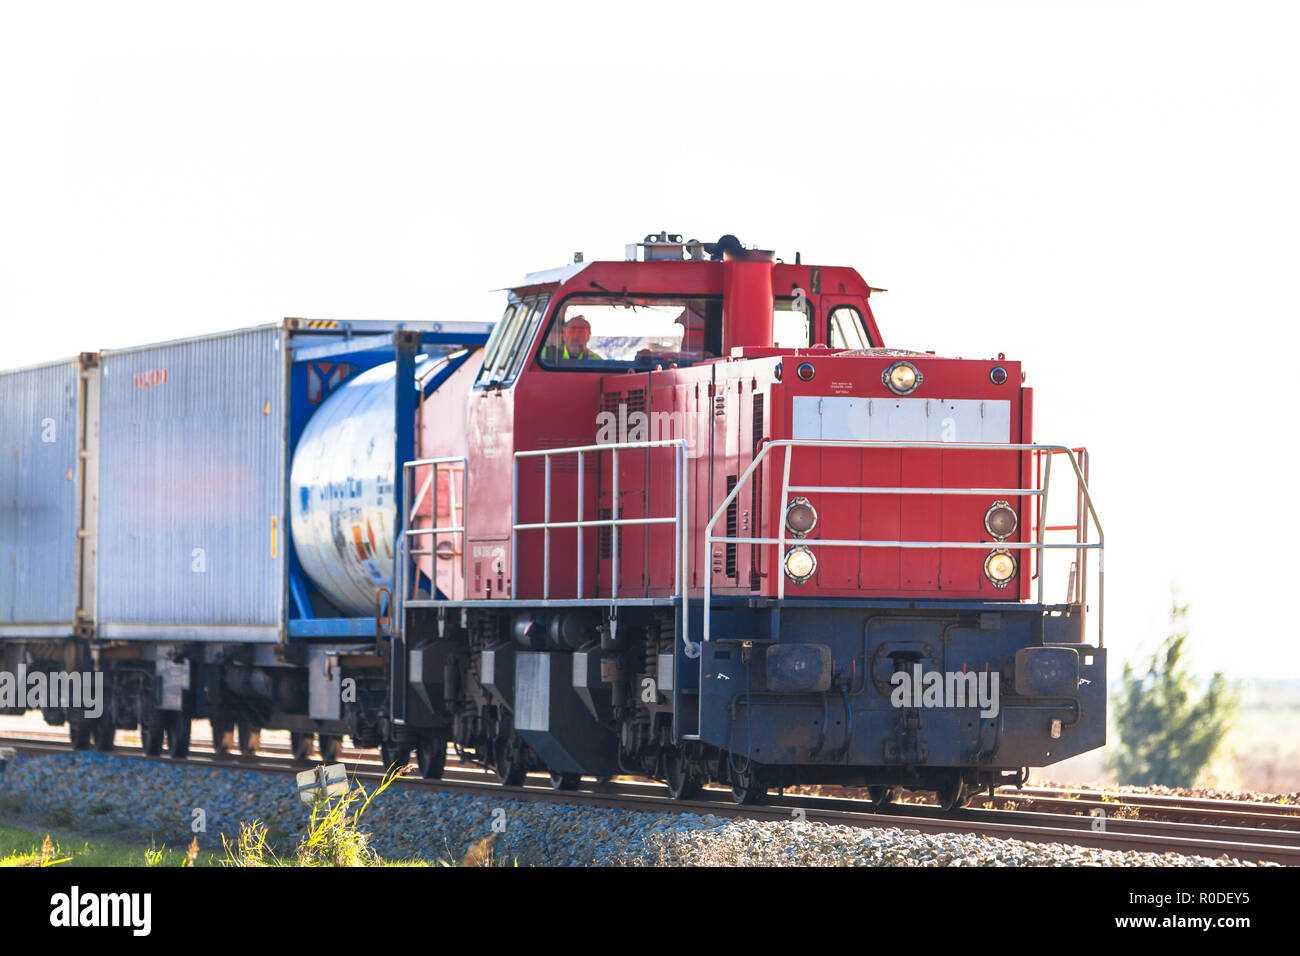 Union Pacific Freight Trains Stock Photos Amp Union Pacific